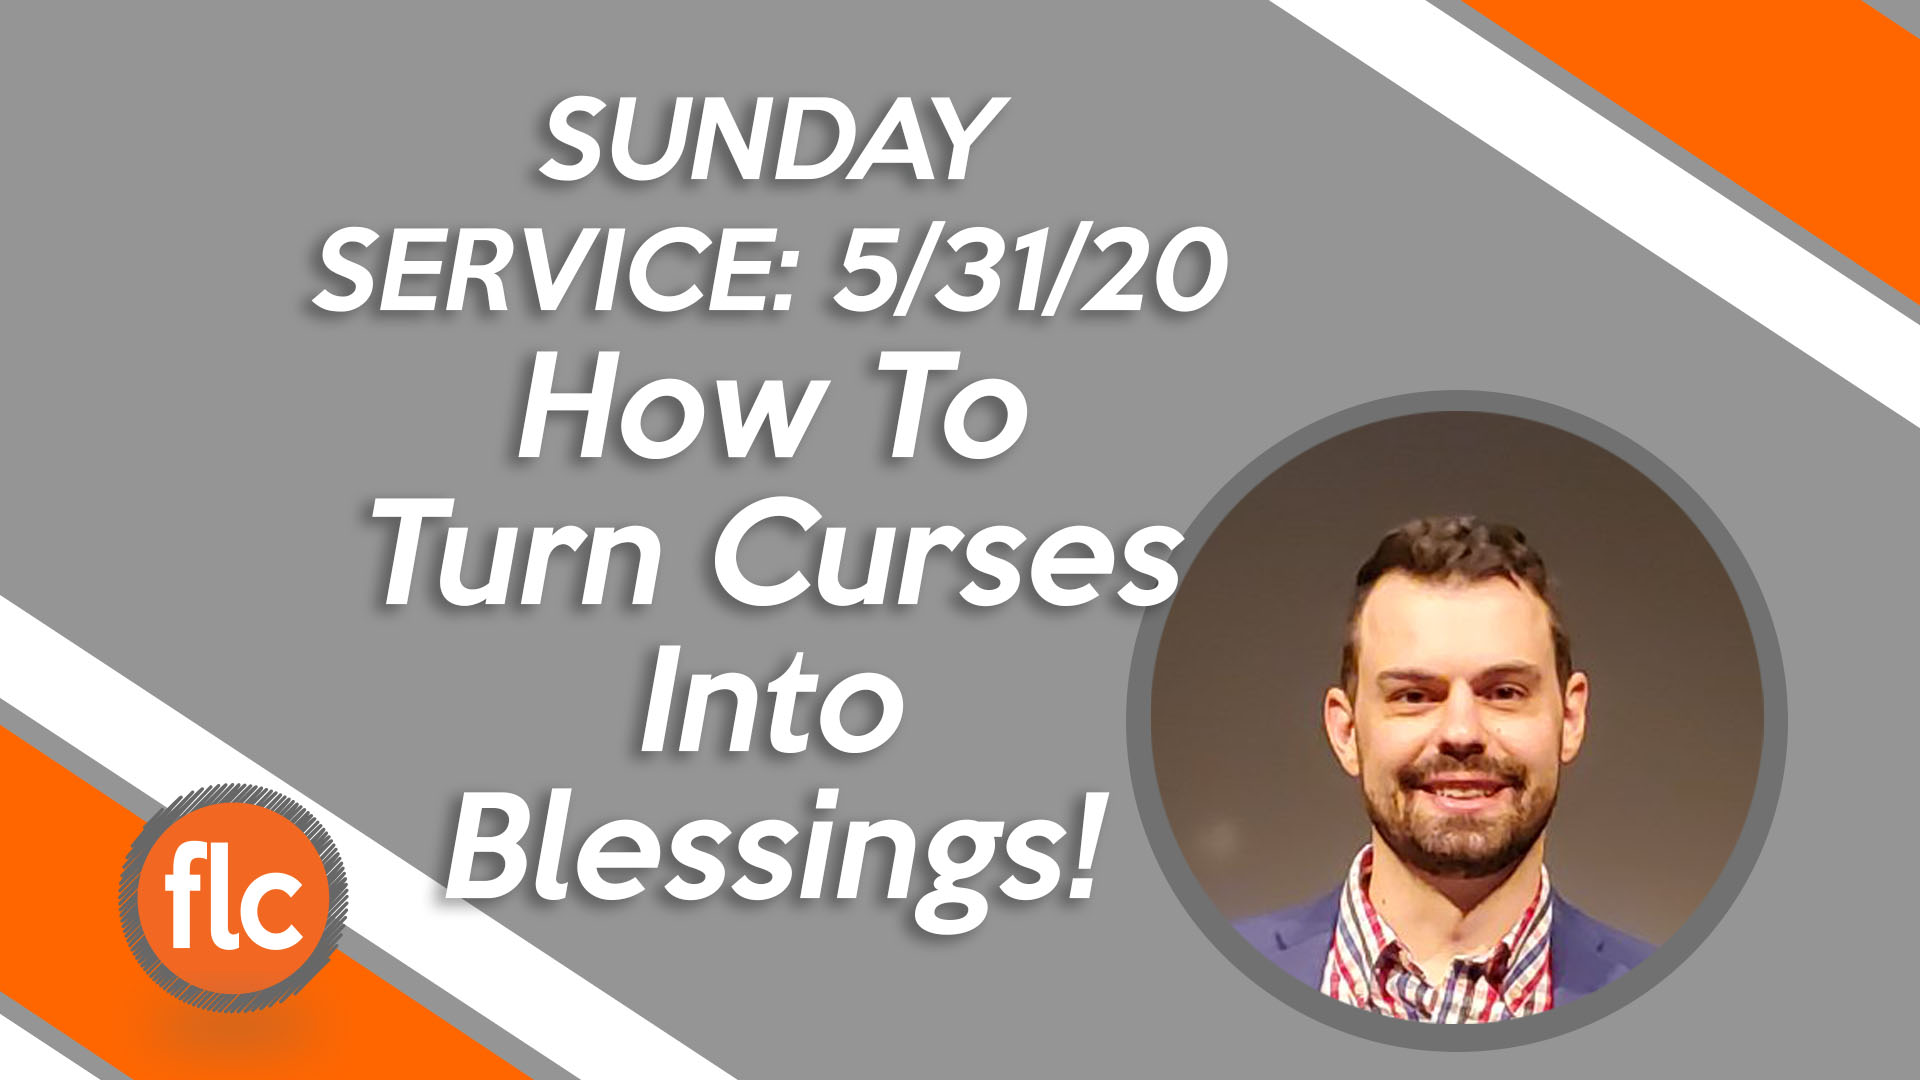 How to Turn Curses Into Blessings